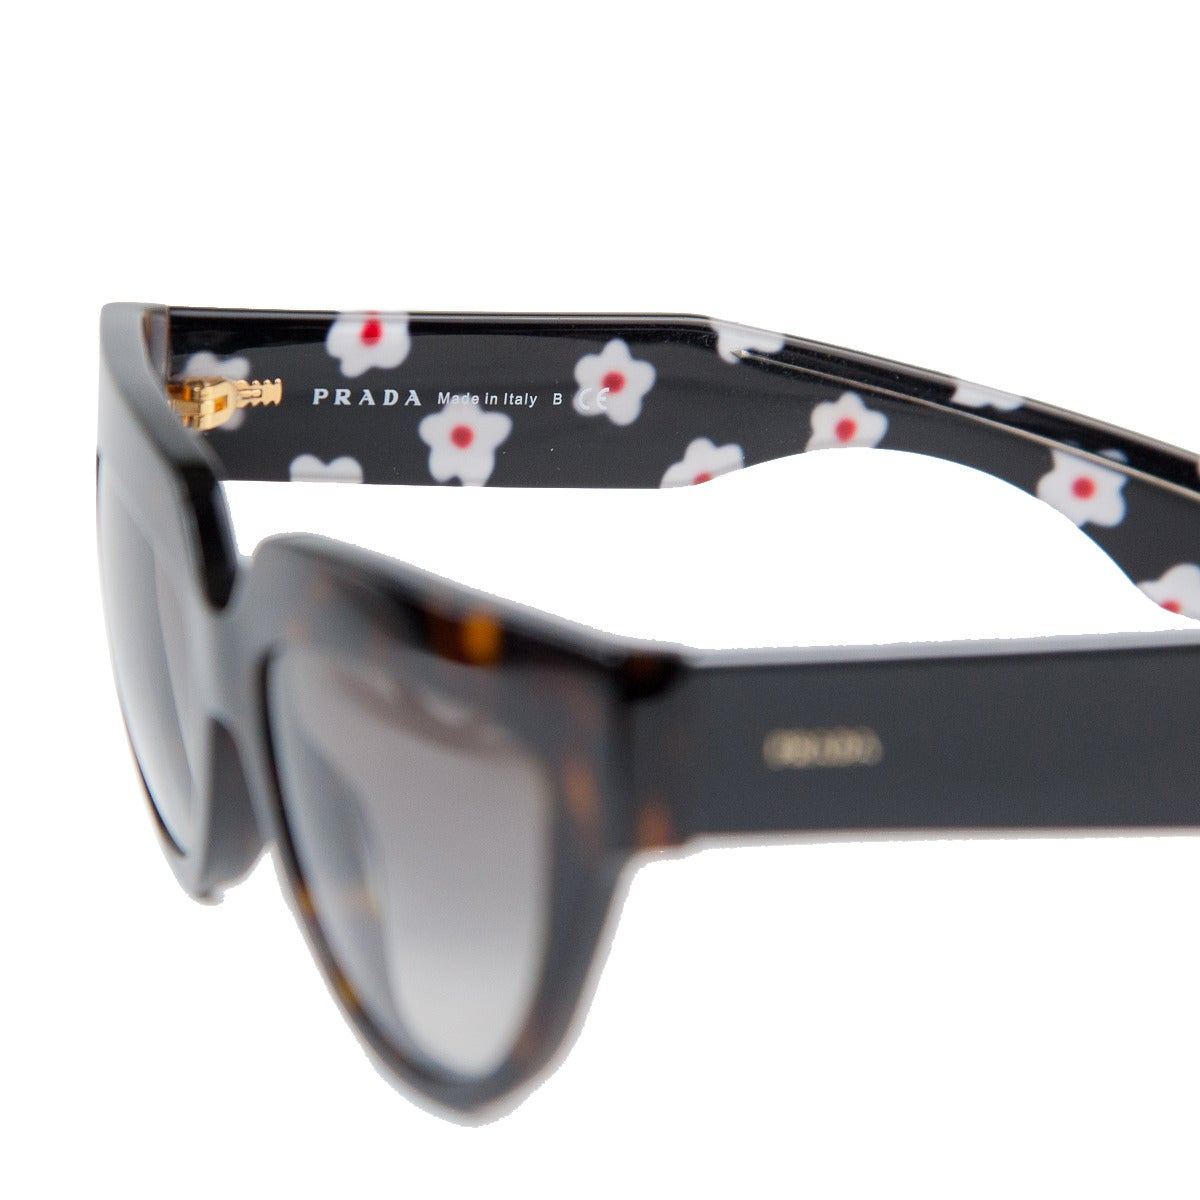 b254a2aa886 Prada Black and Tortoise Flower Sunglasses In Excellent Condition For Sale  In Gazzaniga (BG)